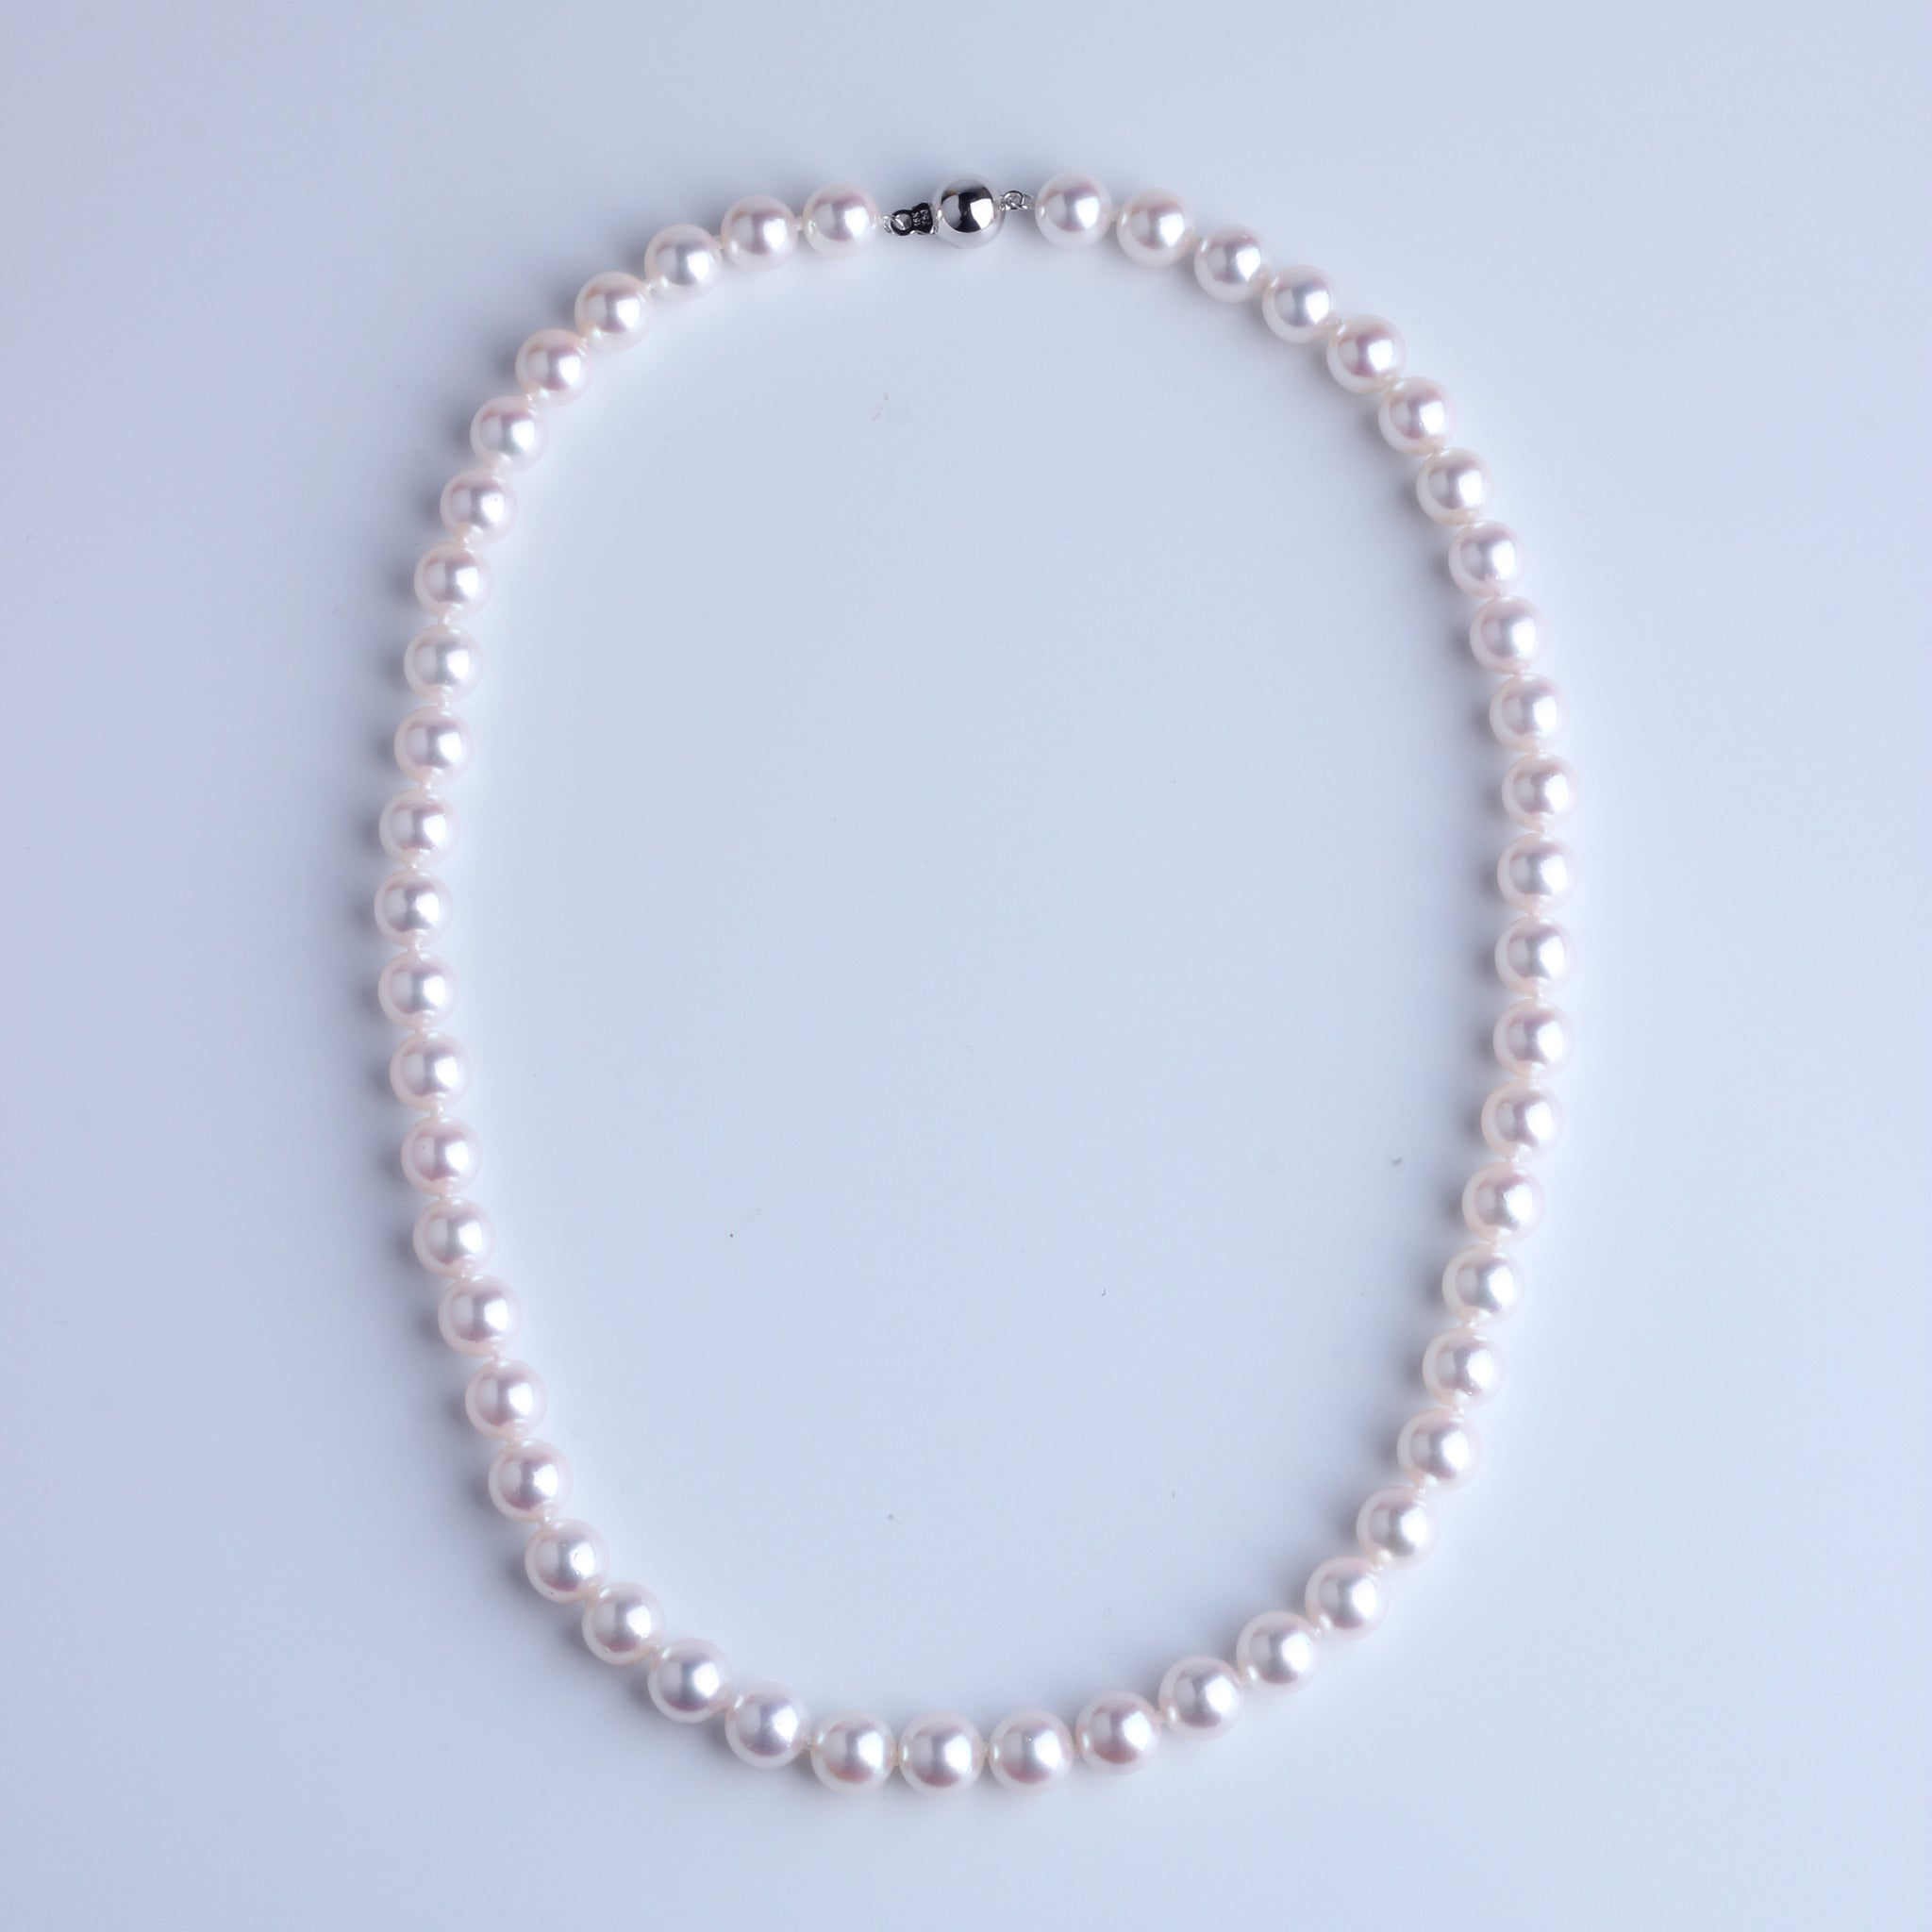 Japan Akoya Pearl Necklace 8-8.5mm